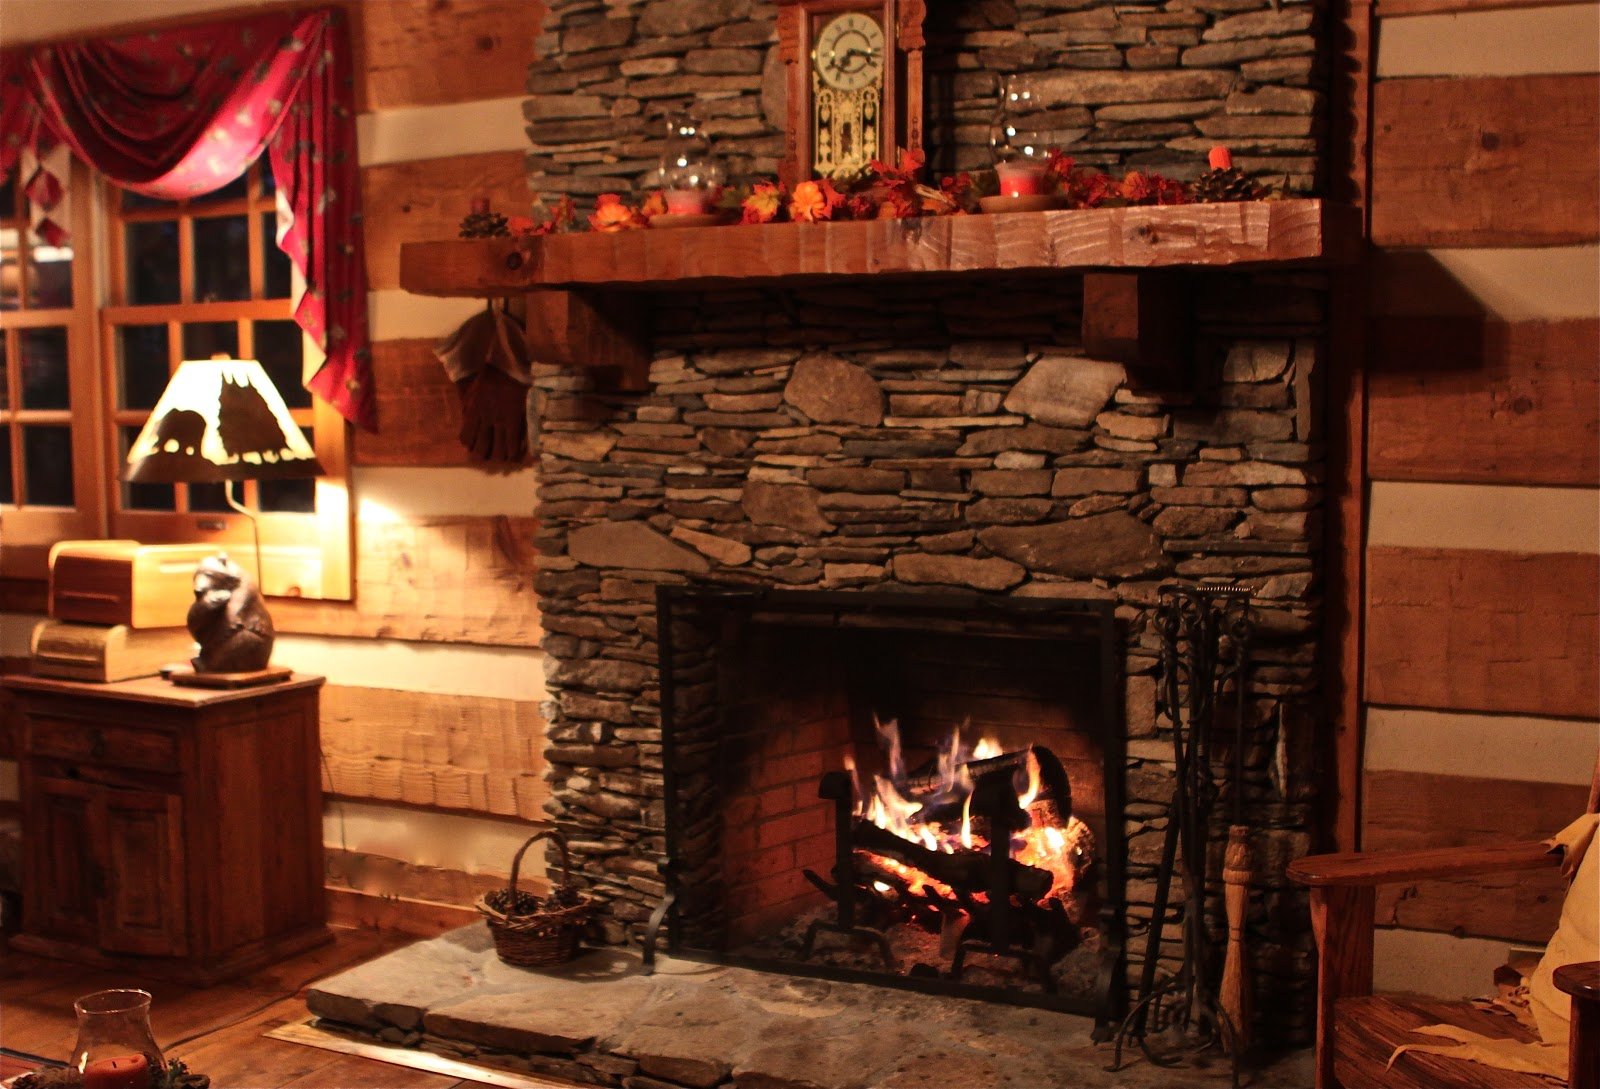 Cozy Fireplace Wallpaper | www.imgkid.com - The Image Kid ...